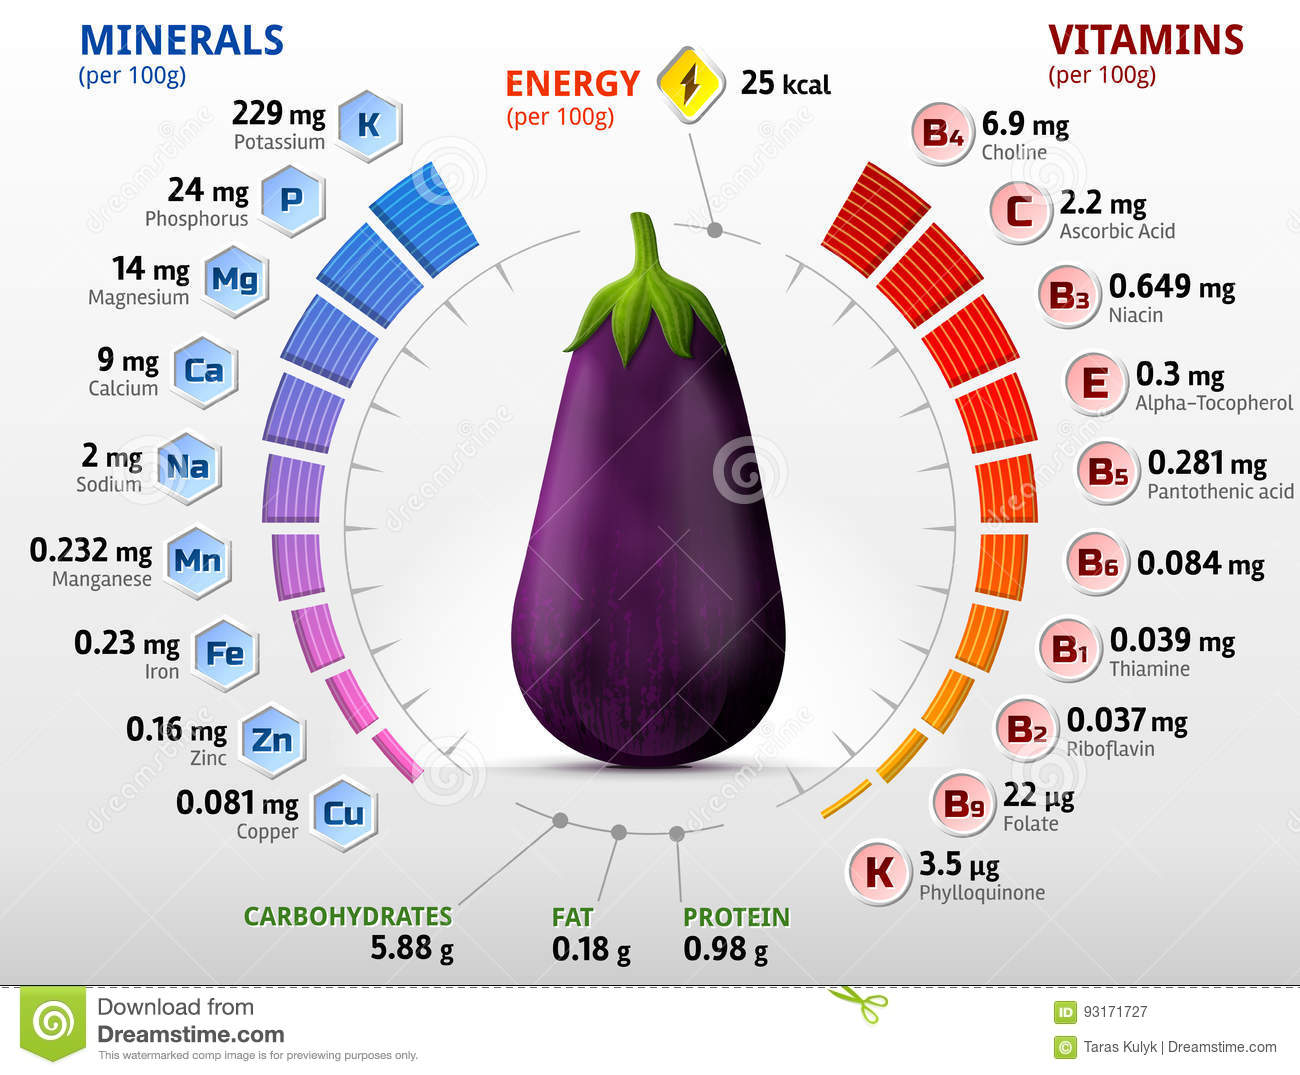 Vitamins and minerals of eggplant fruit stock vector illustration download comp ccuart Image collections